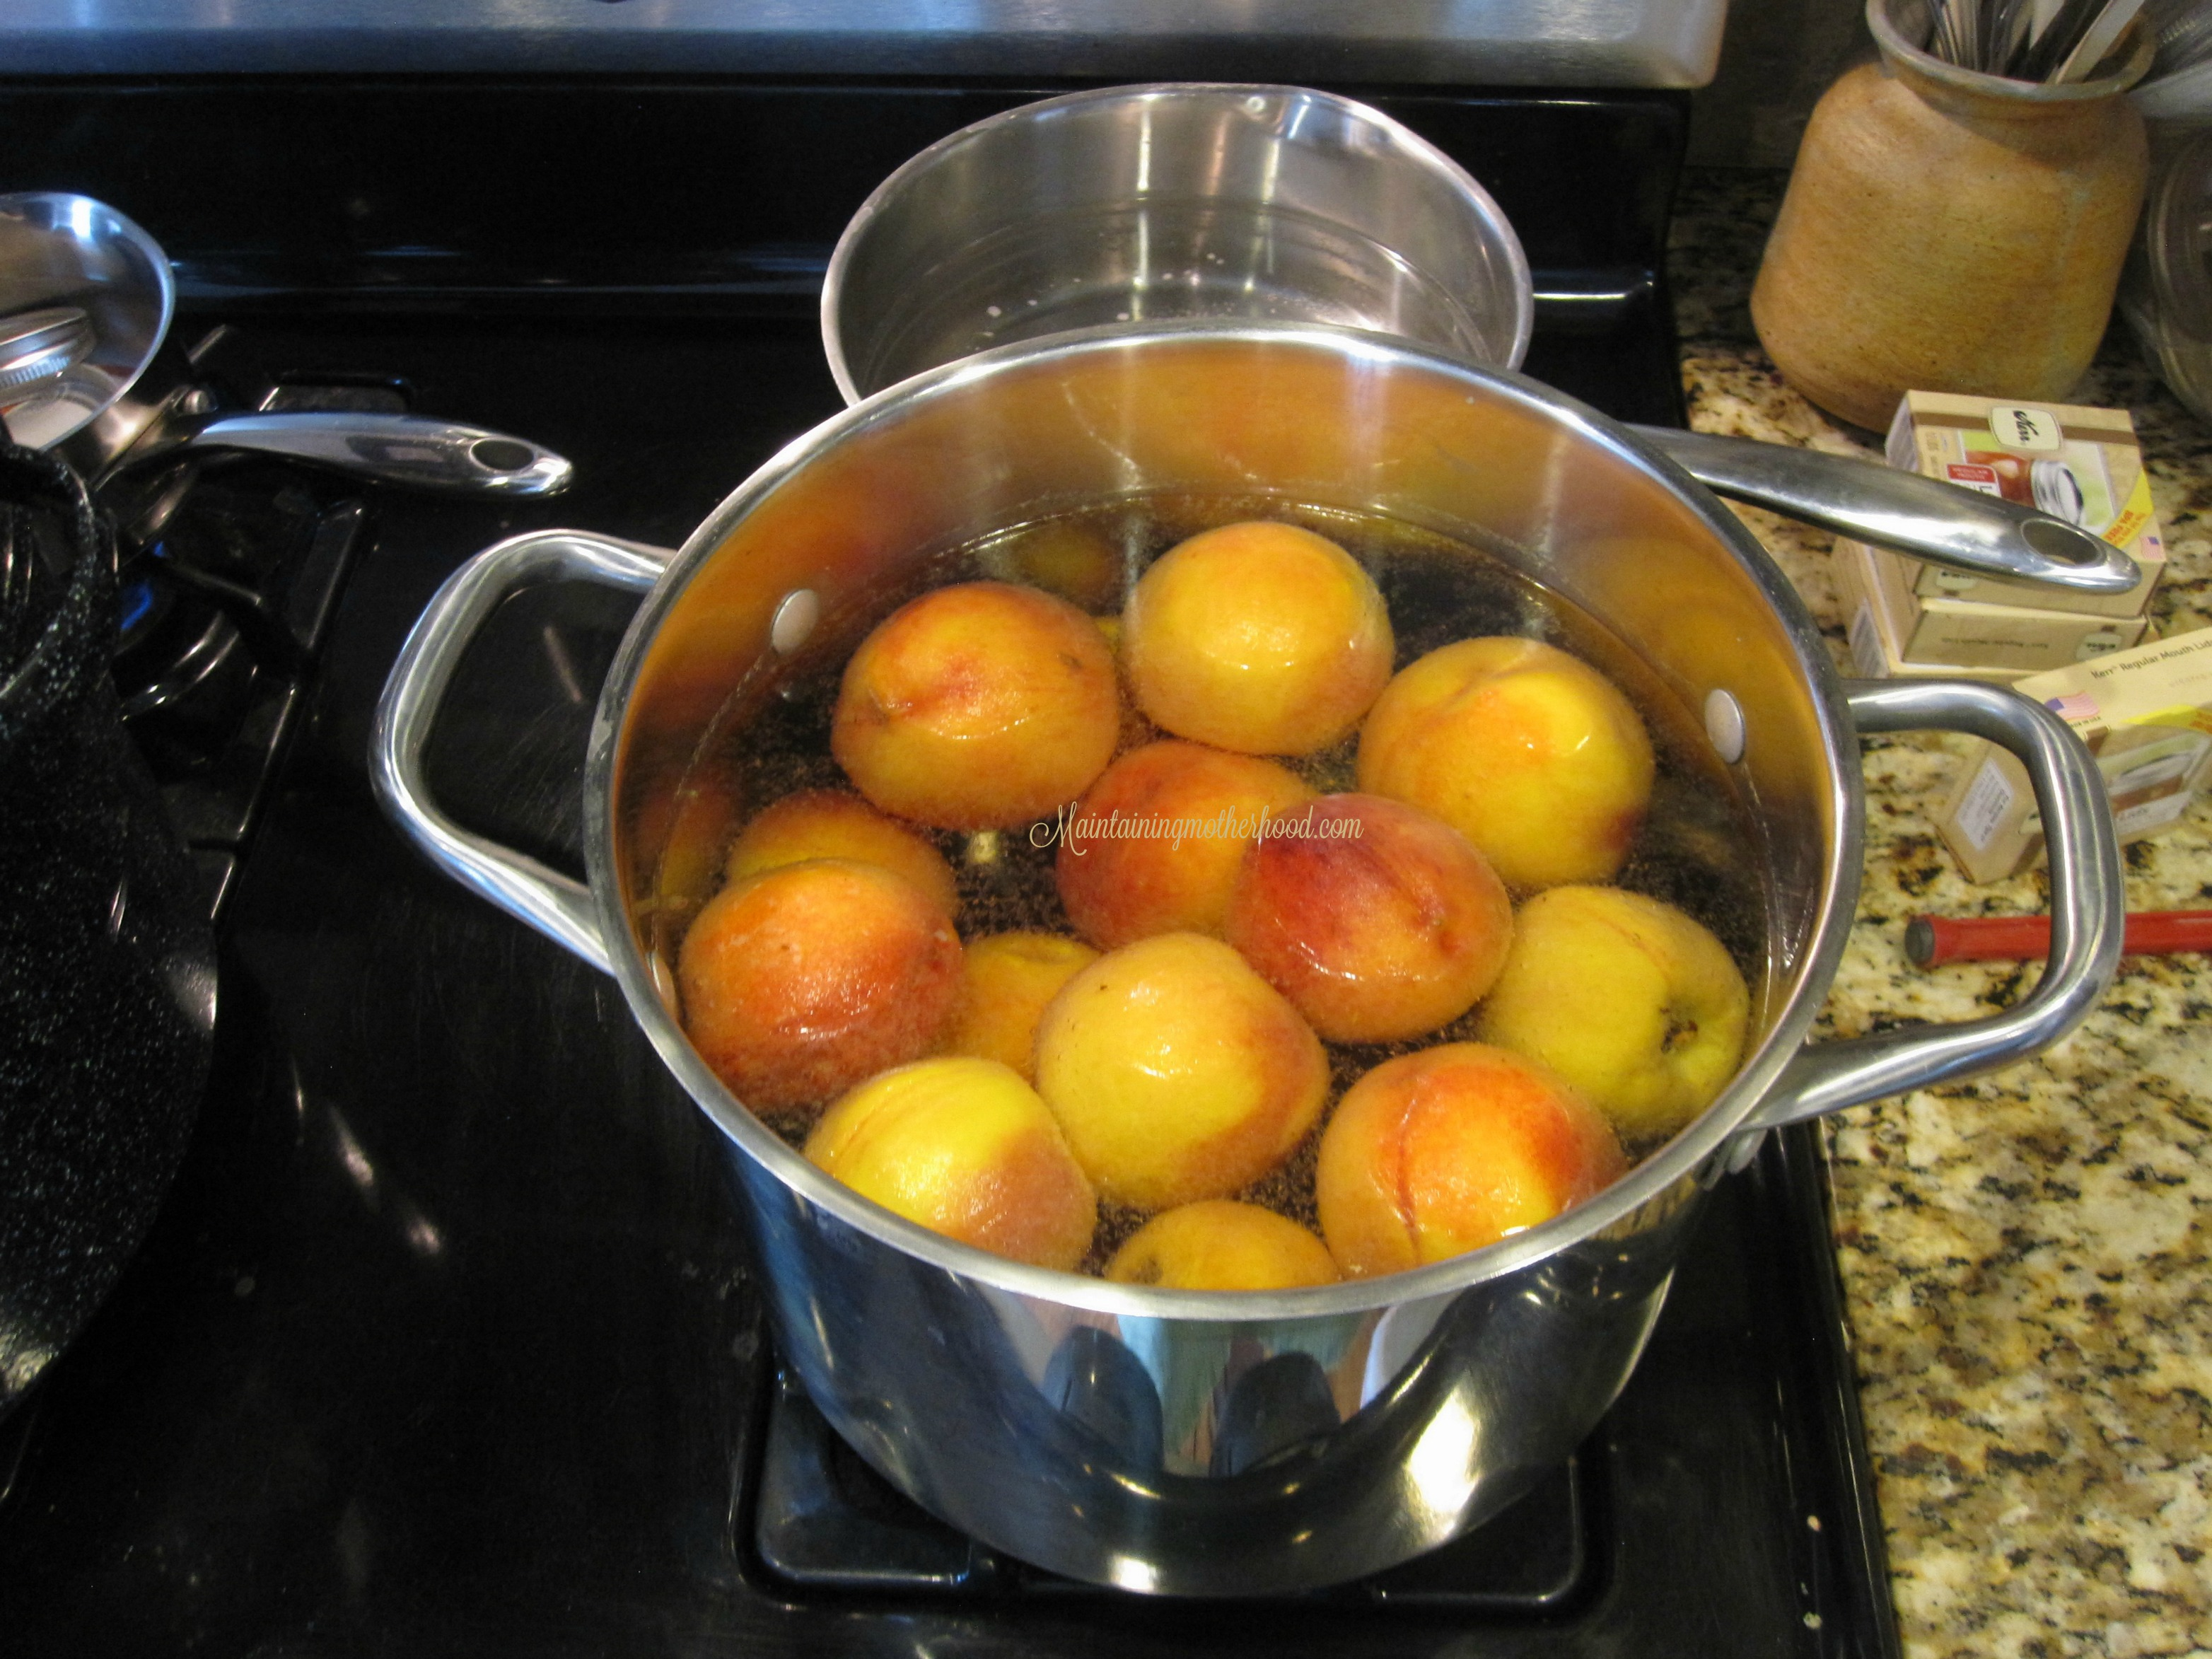 Want to savor the taste of summer all winter long? Enjoy canned peaches even after peach season. Learn how to can peaches In 10 simple steps.